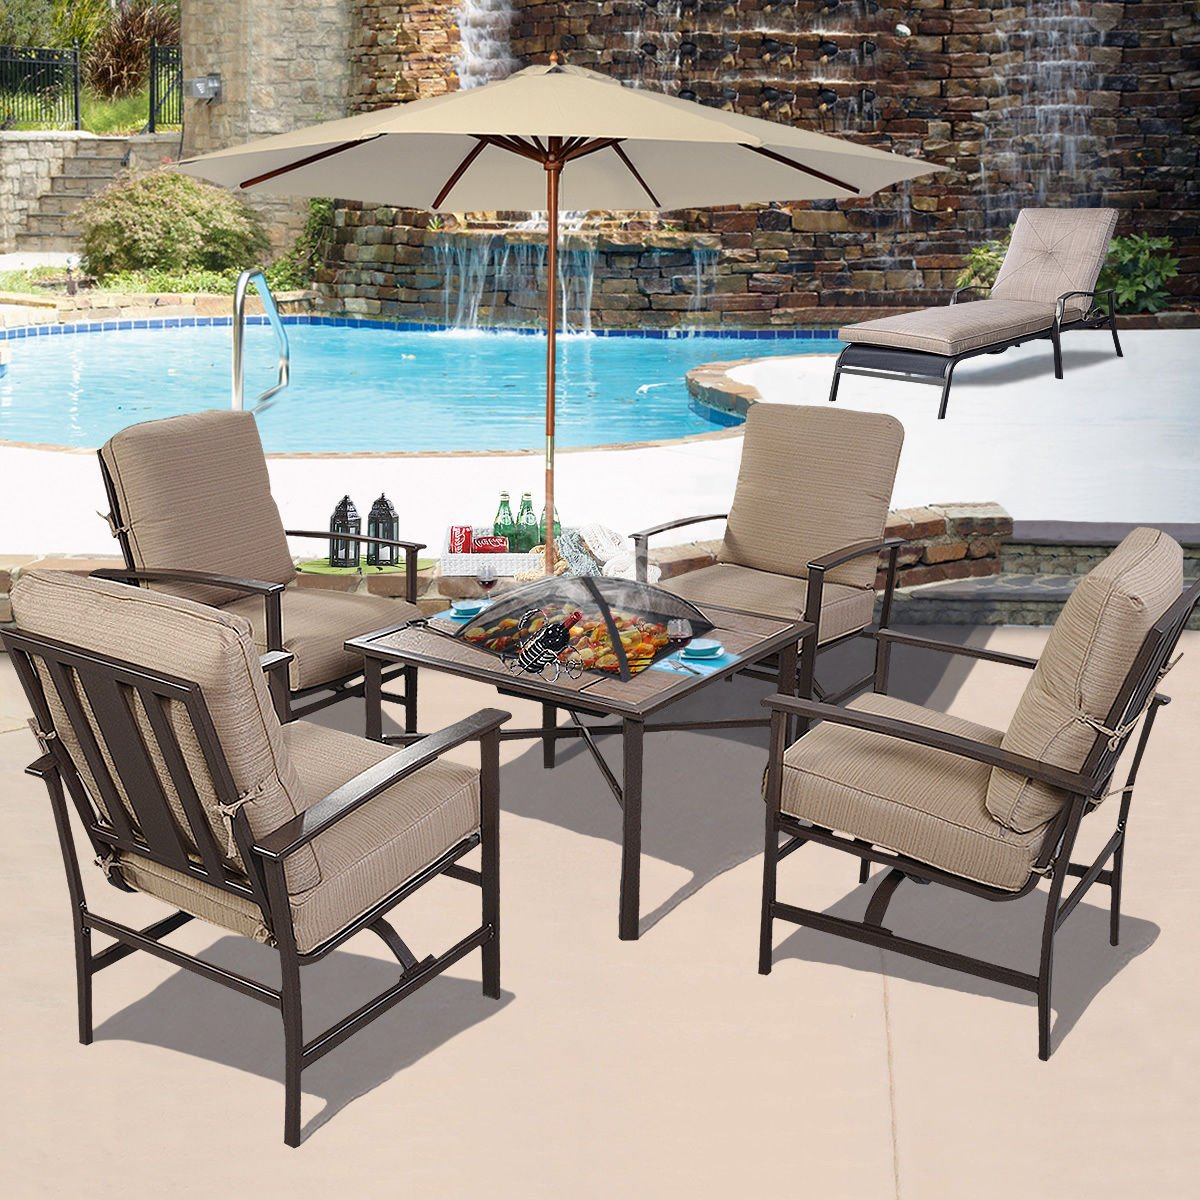 amazoncom ghp outdoor patio 5piece chair u0026 bbq stove fire pit table furniture set w umbrella patio lawn u0026 garden